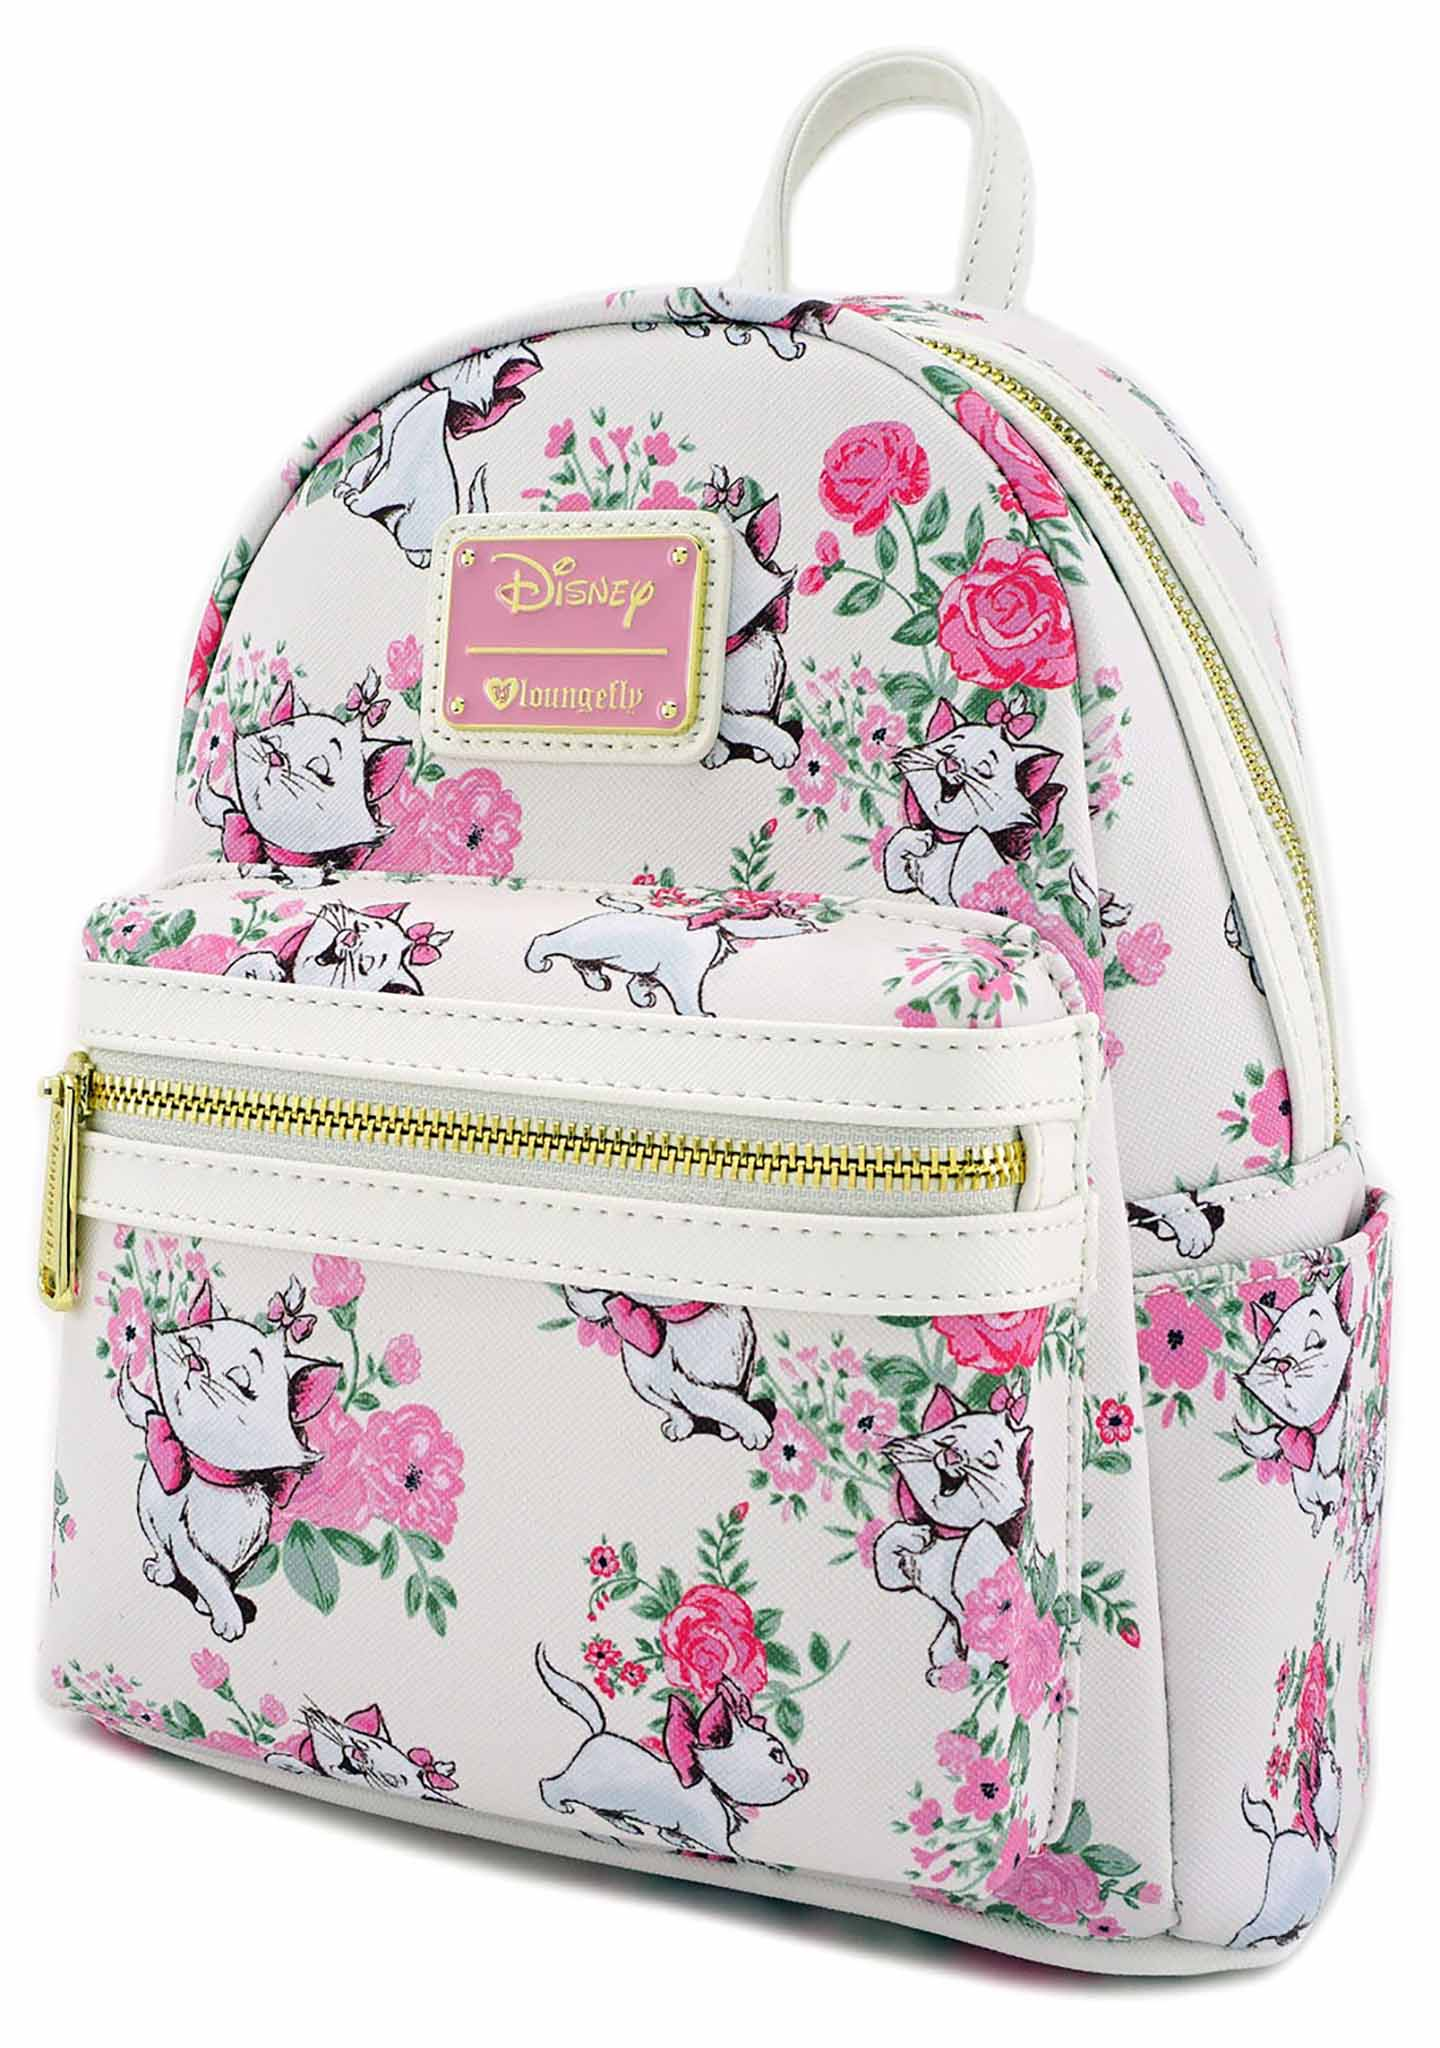 063a8e84b59 X Disney The Aristocats Marie Floral Mini Backpack